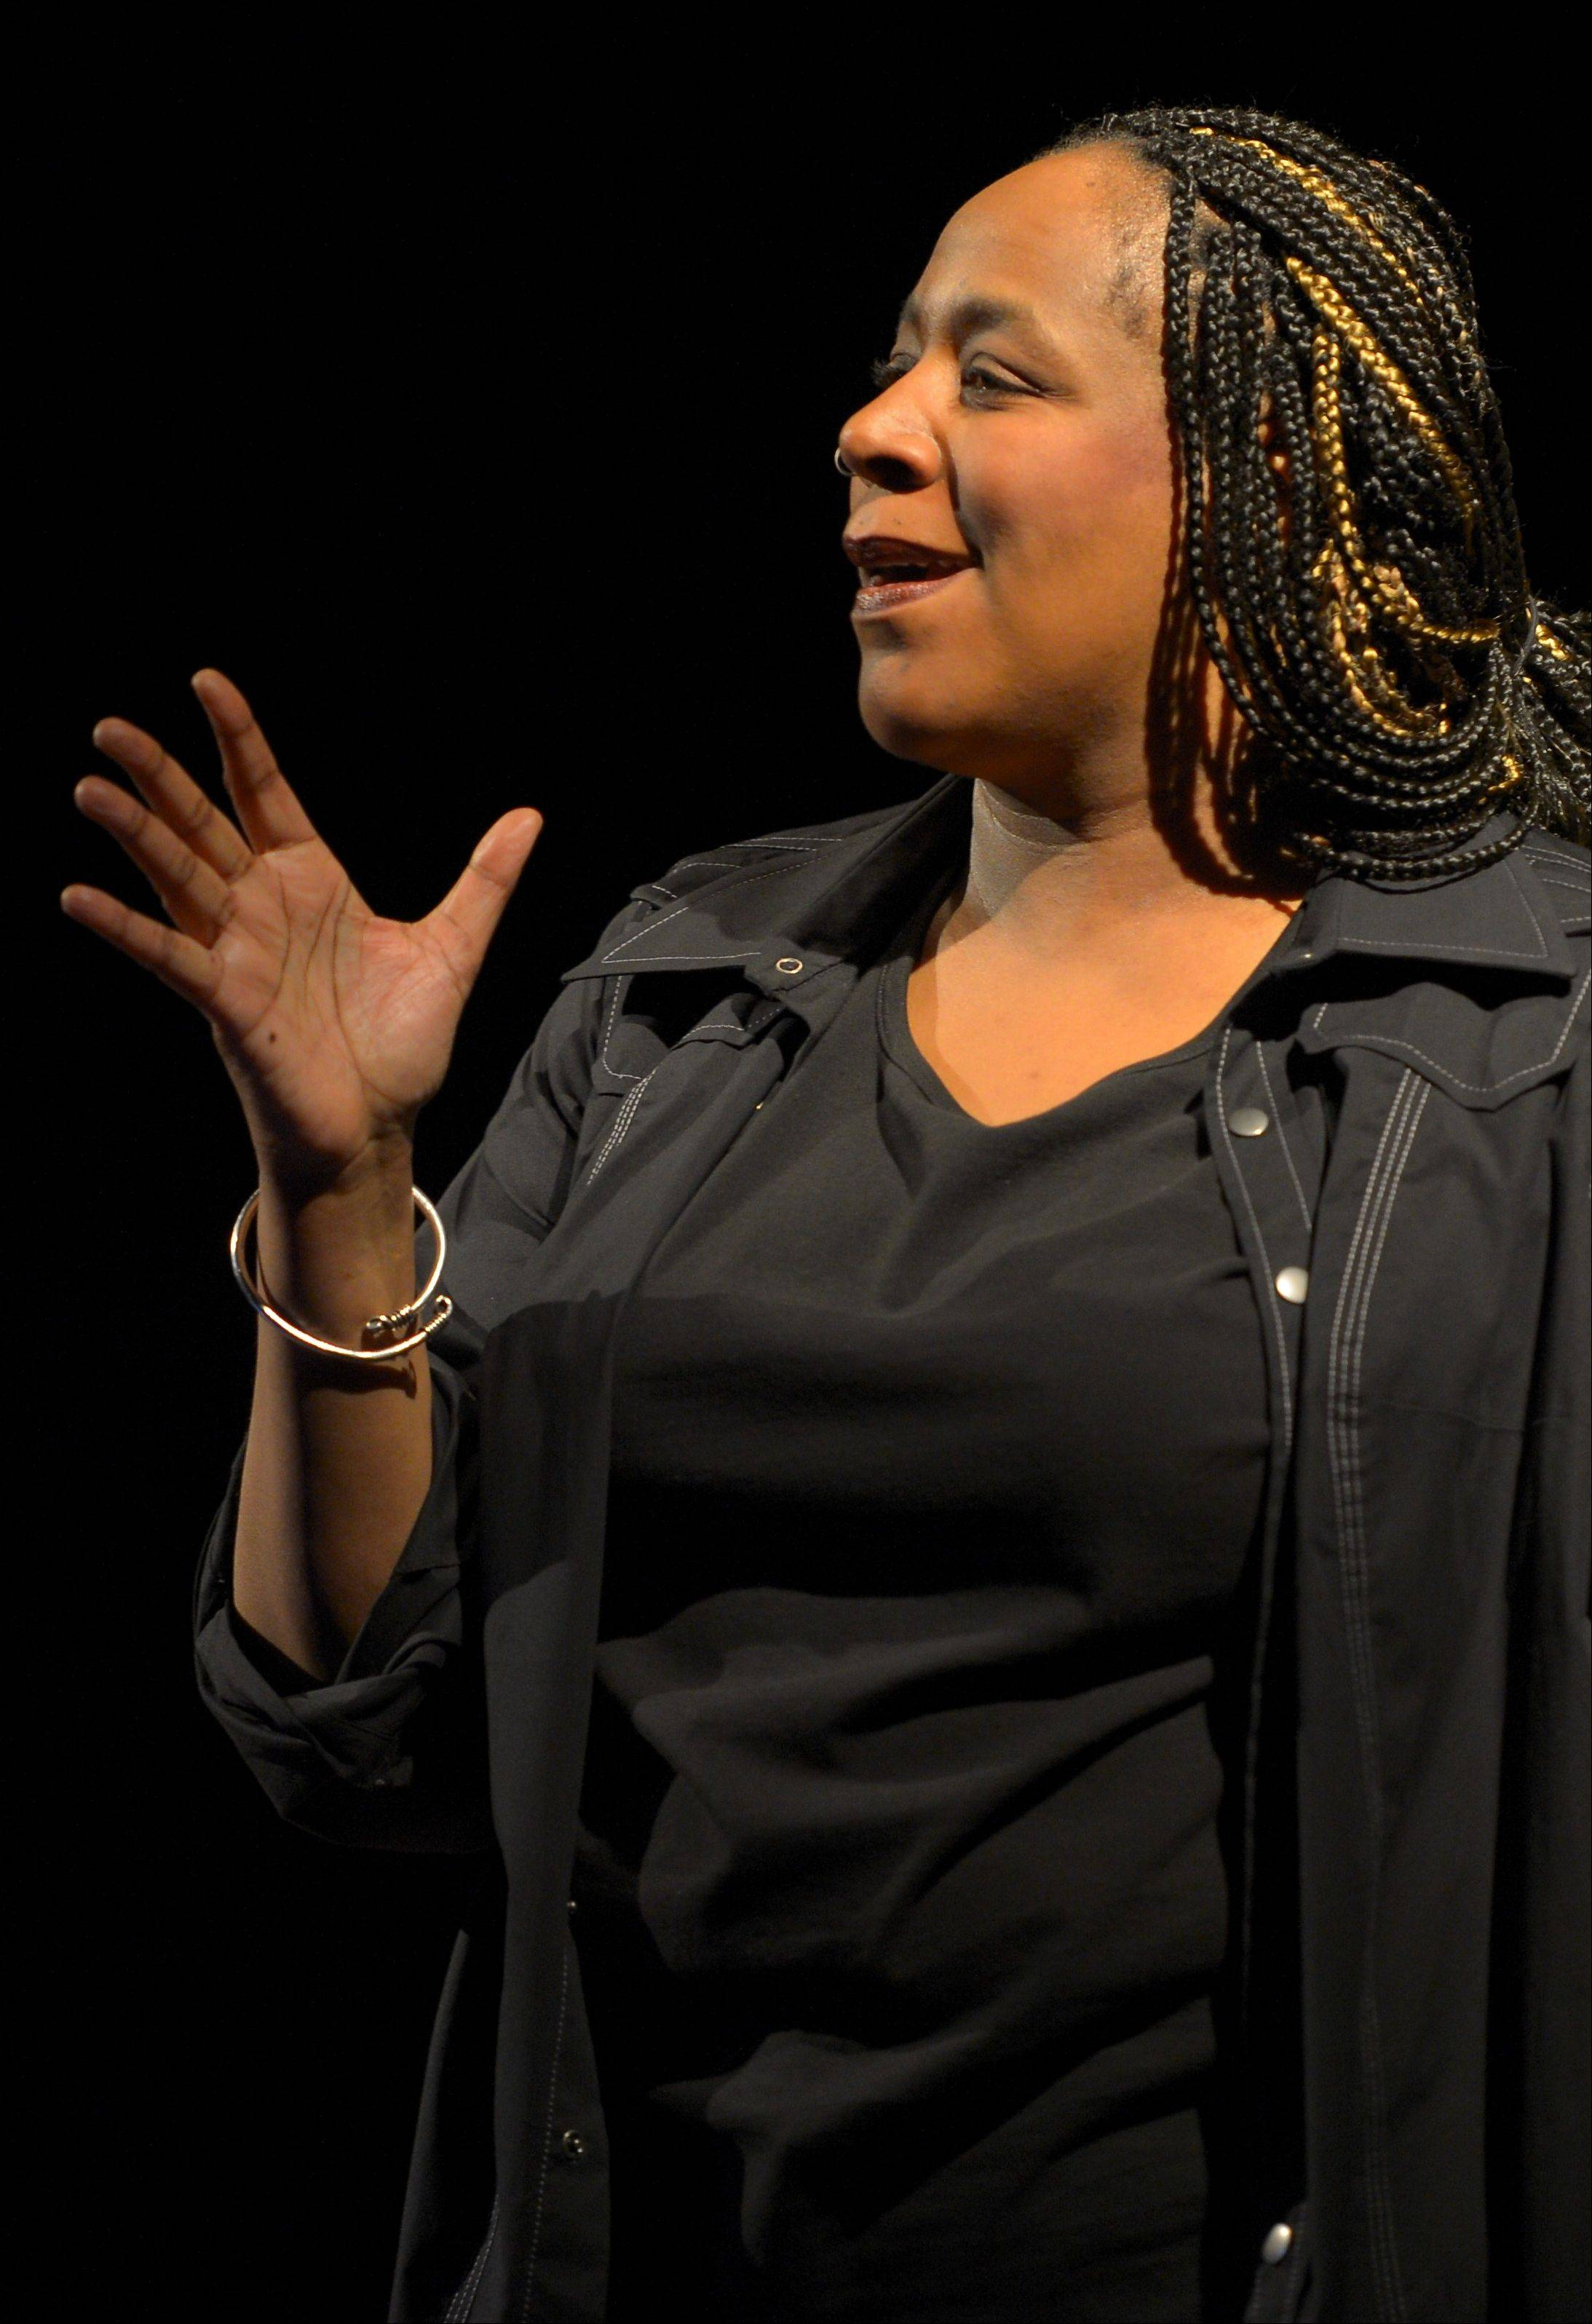 "Playwright/poet/performer Dael Orlandersmith plays young boys and men nearly undone by abuse in her solo play ""Black n Blue Boys/Broken,"" a co-commission between Goodman and Berkeley Repertory theaters."